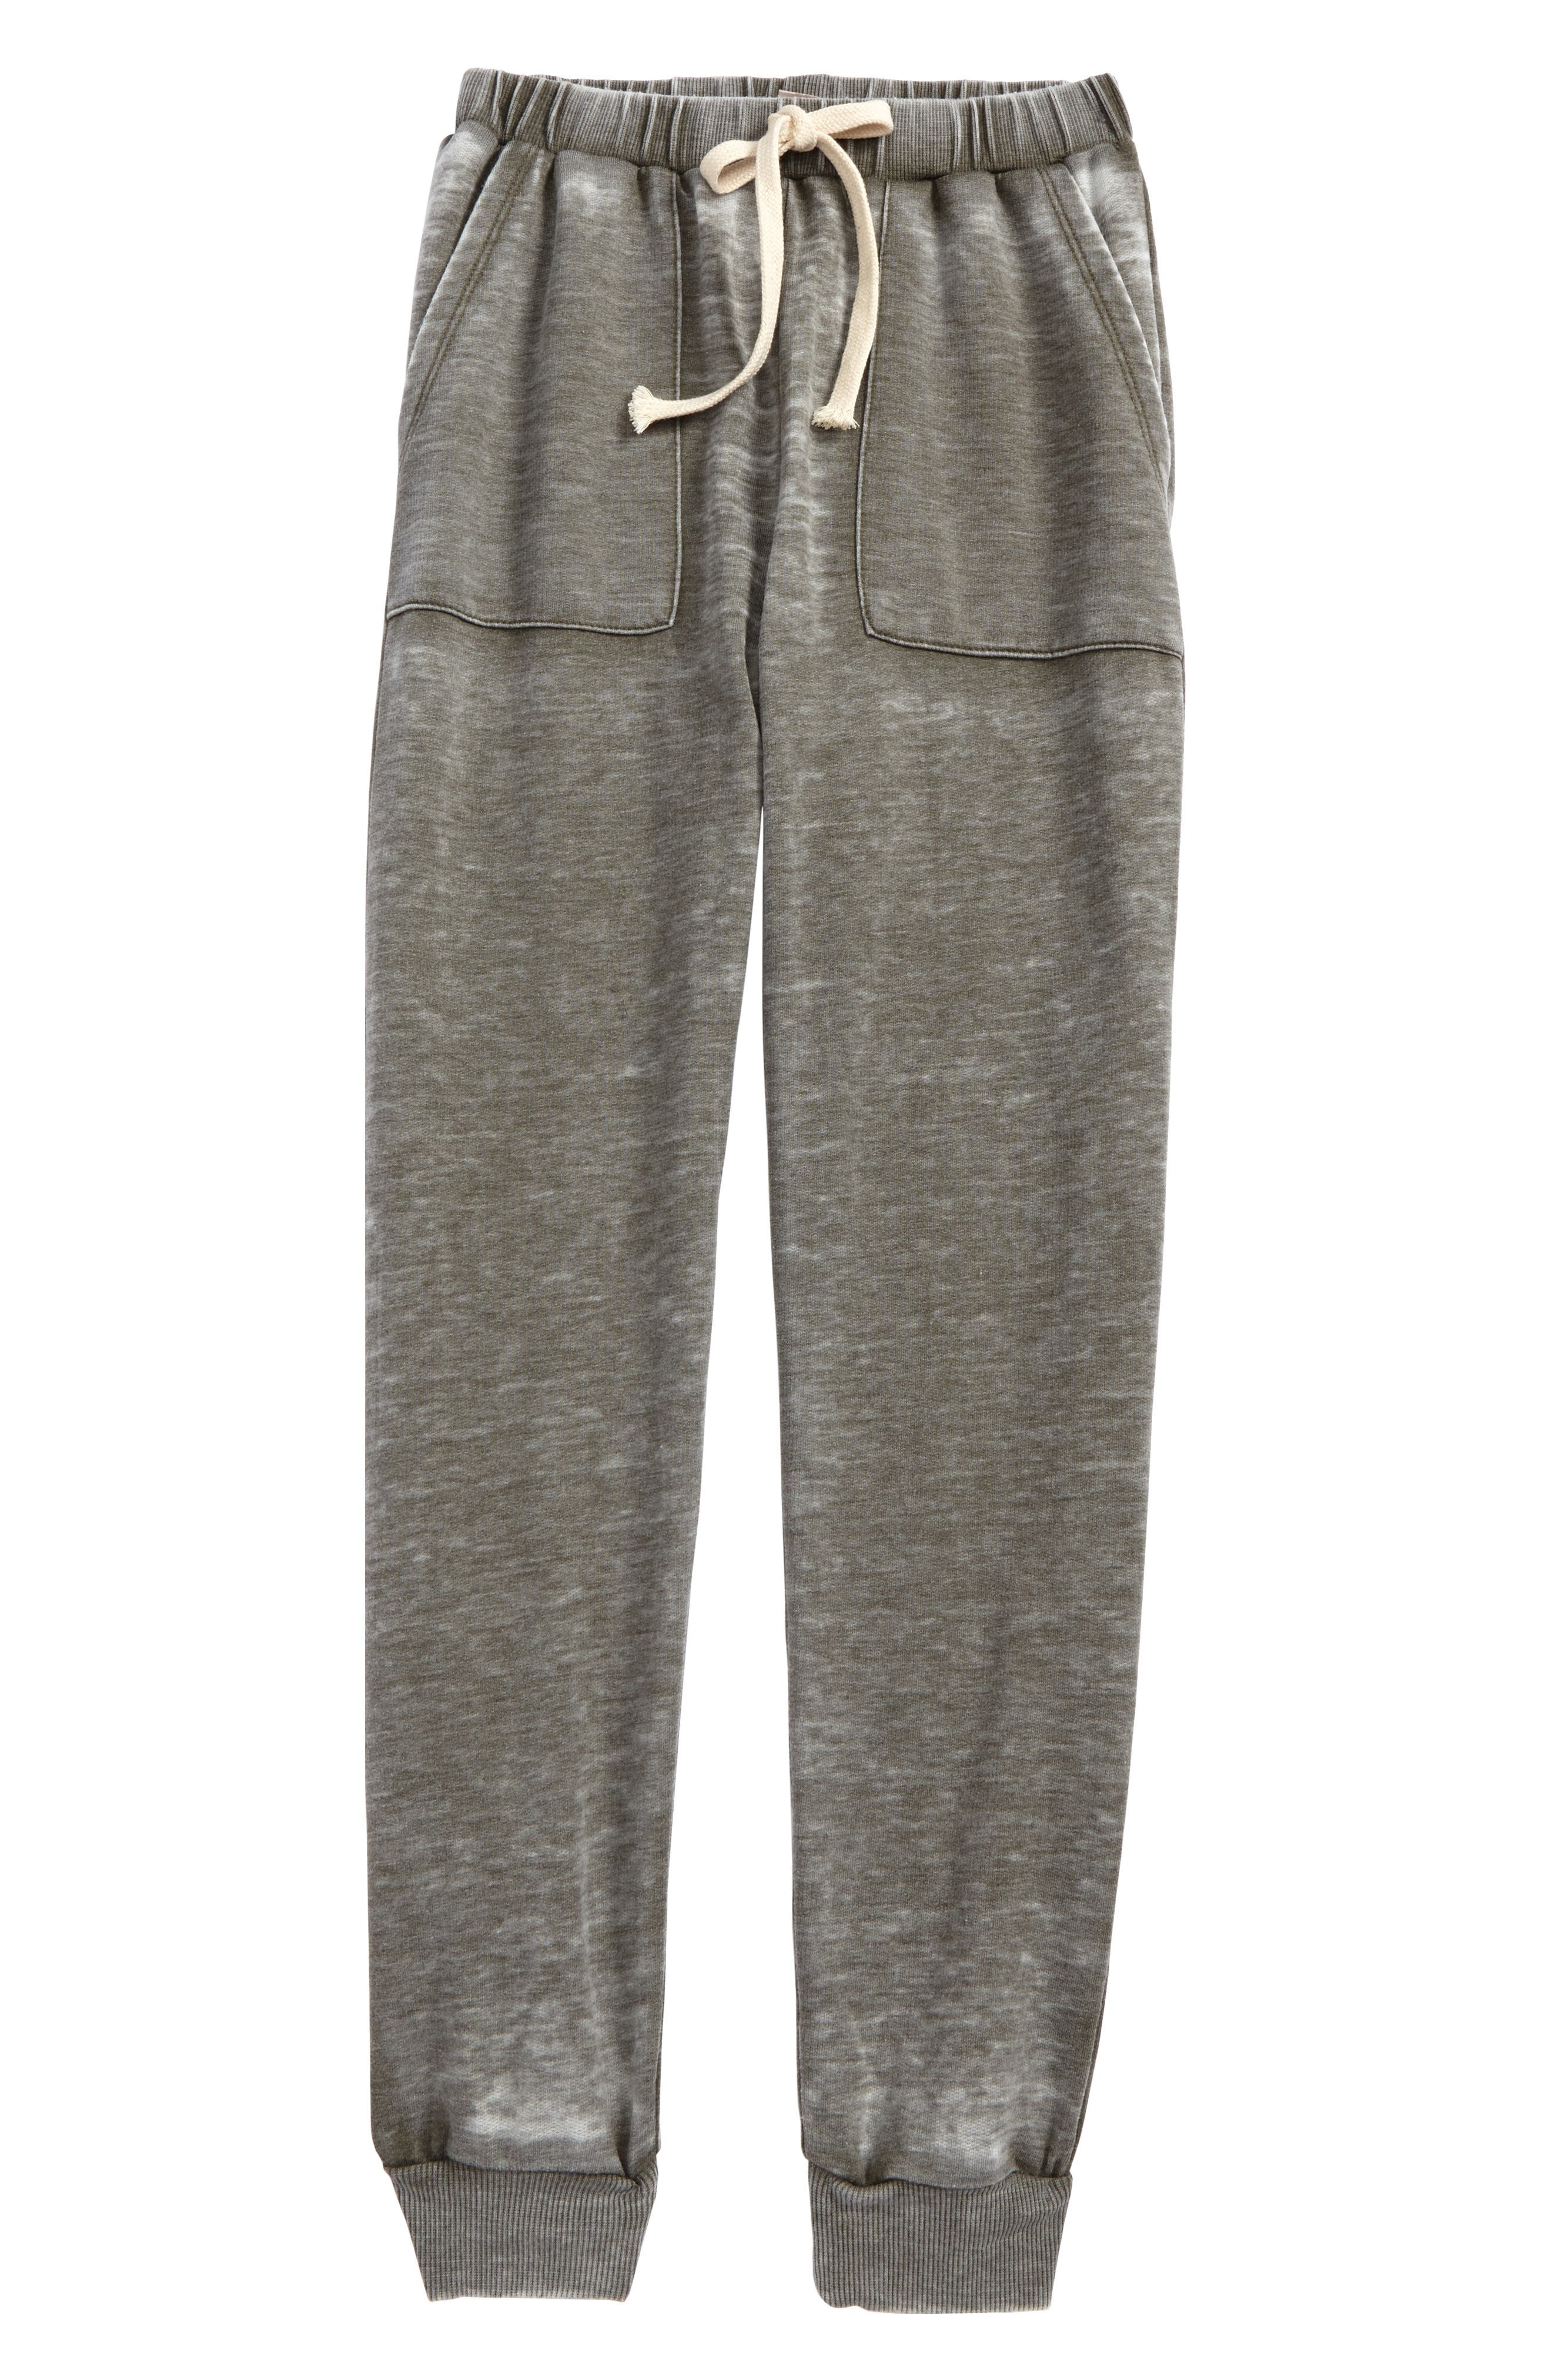 For All Seasons Distressed Sweatpants (Big Girls)